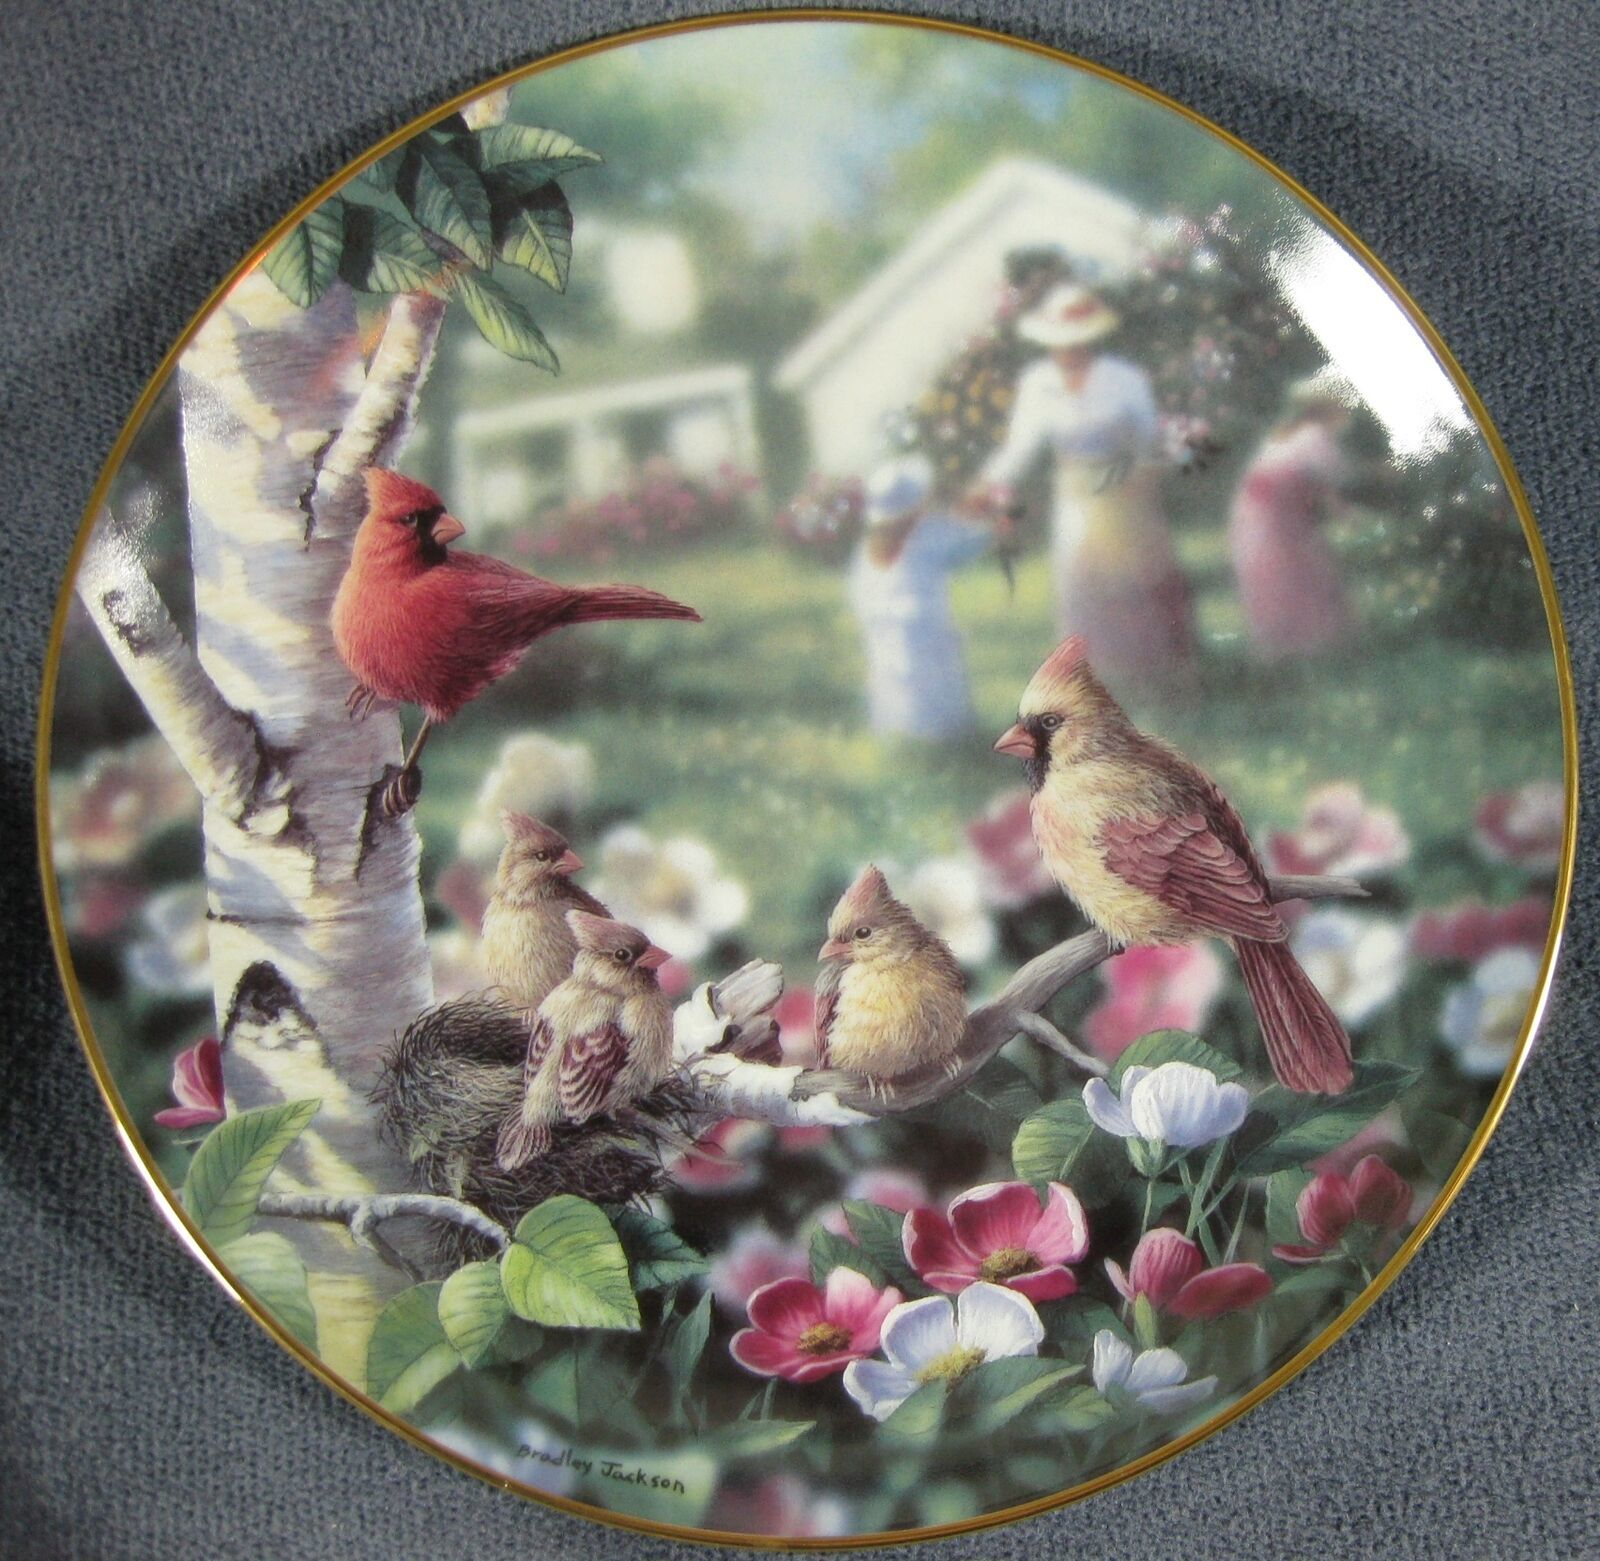 Primary image for Beauty In Bloom Collector Plate Family Album Bradley Jackson 1993 Danbury Mint